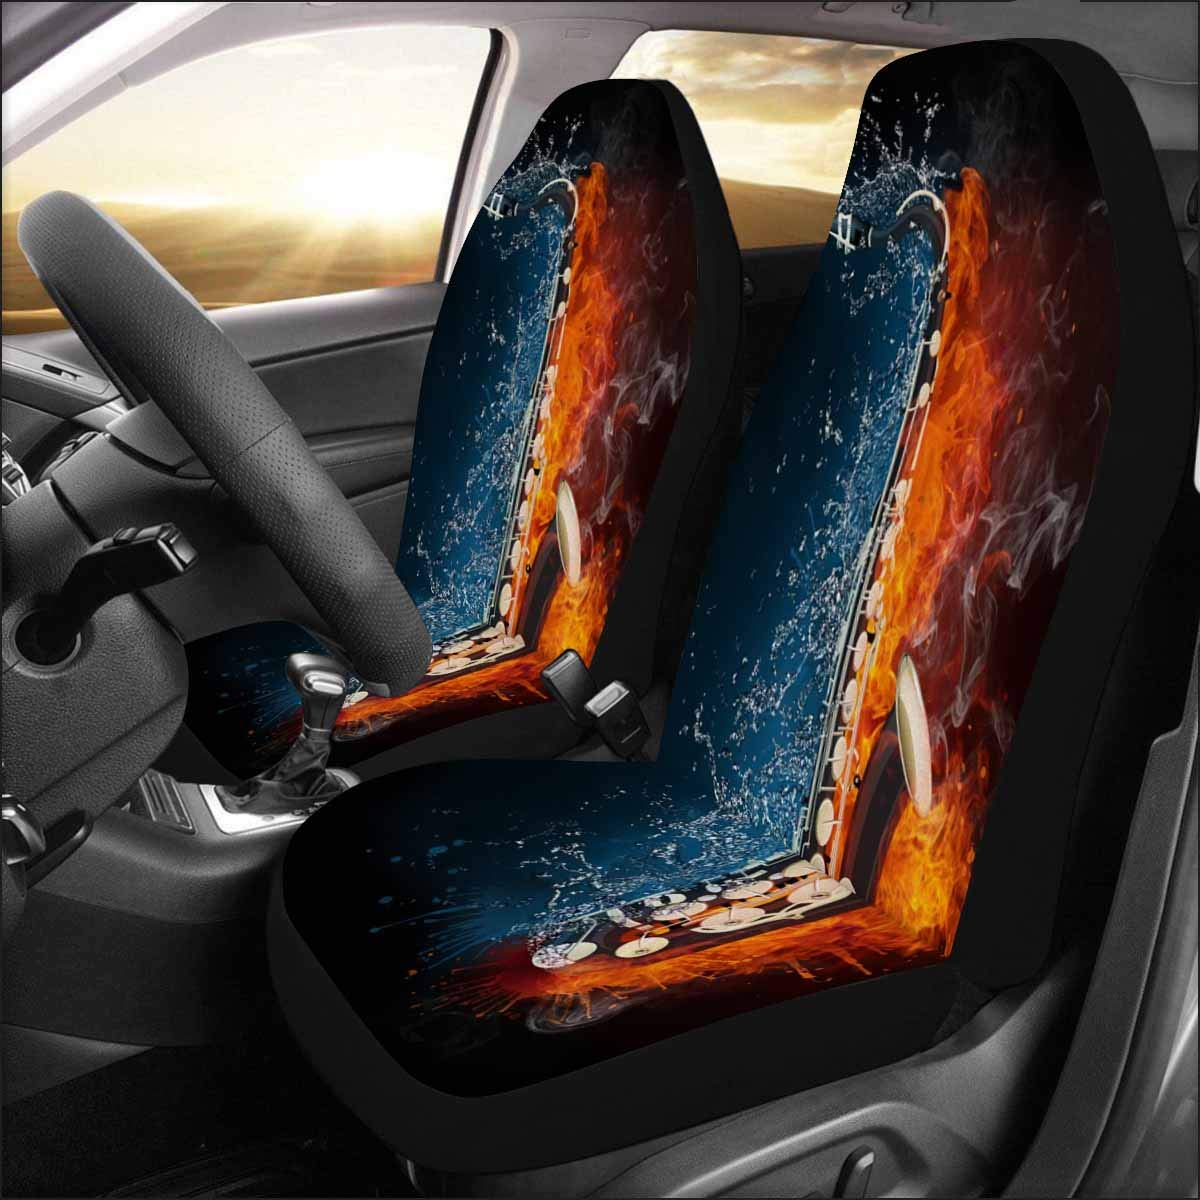 Breathable Bottom Seat Covers for Cars Universal Fit 2 Pieces INTERESTPRINT Car Seat Covers